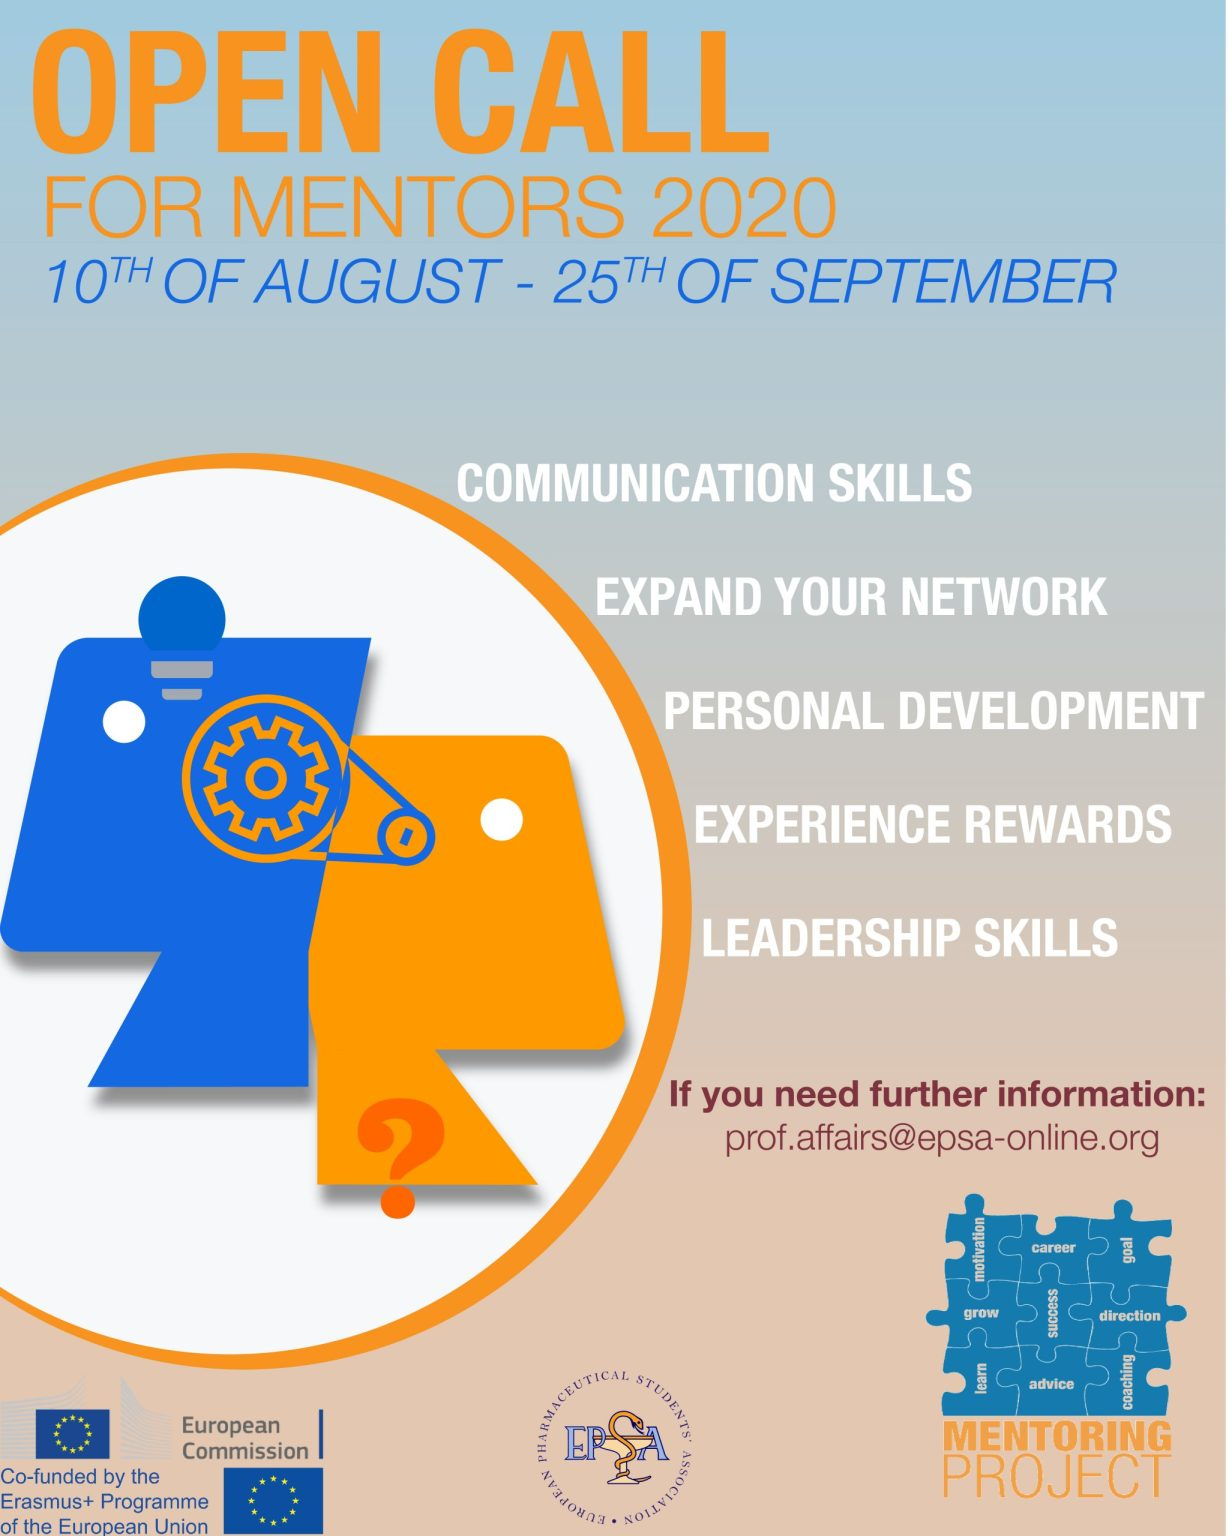 Open Call for mentors 2020 10th of August to 25th of September